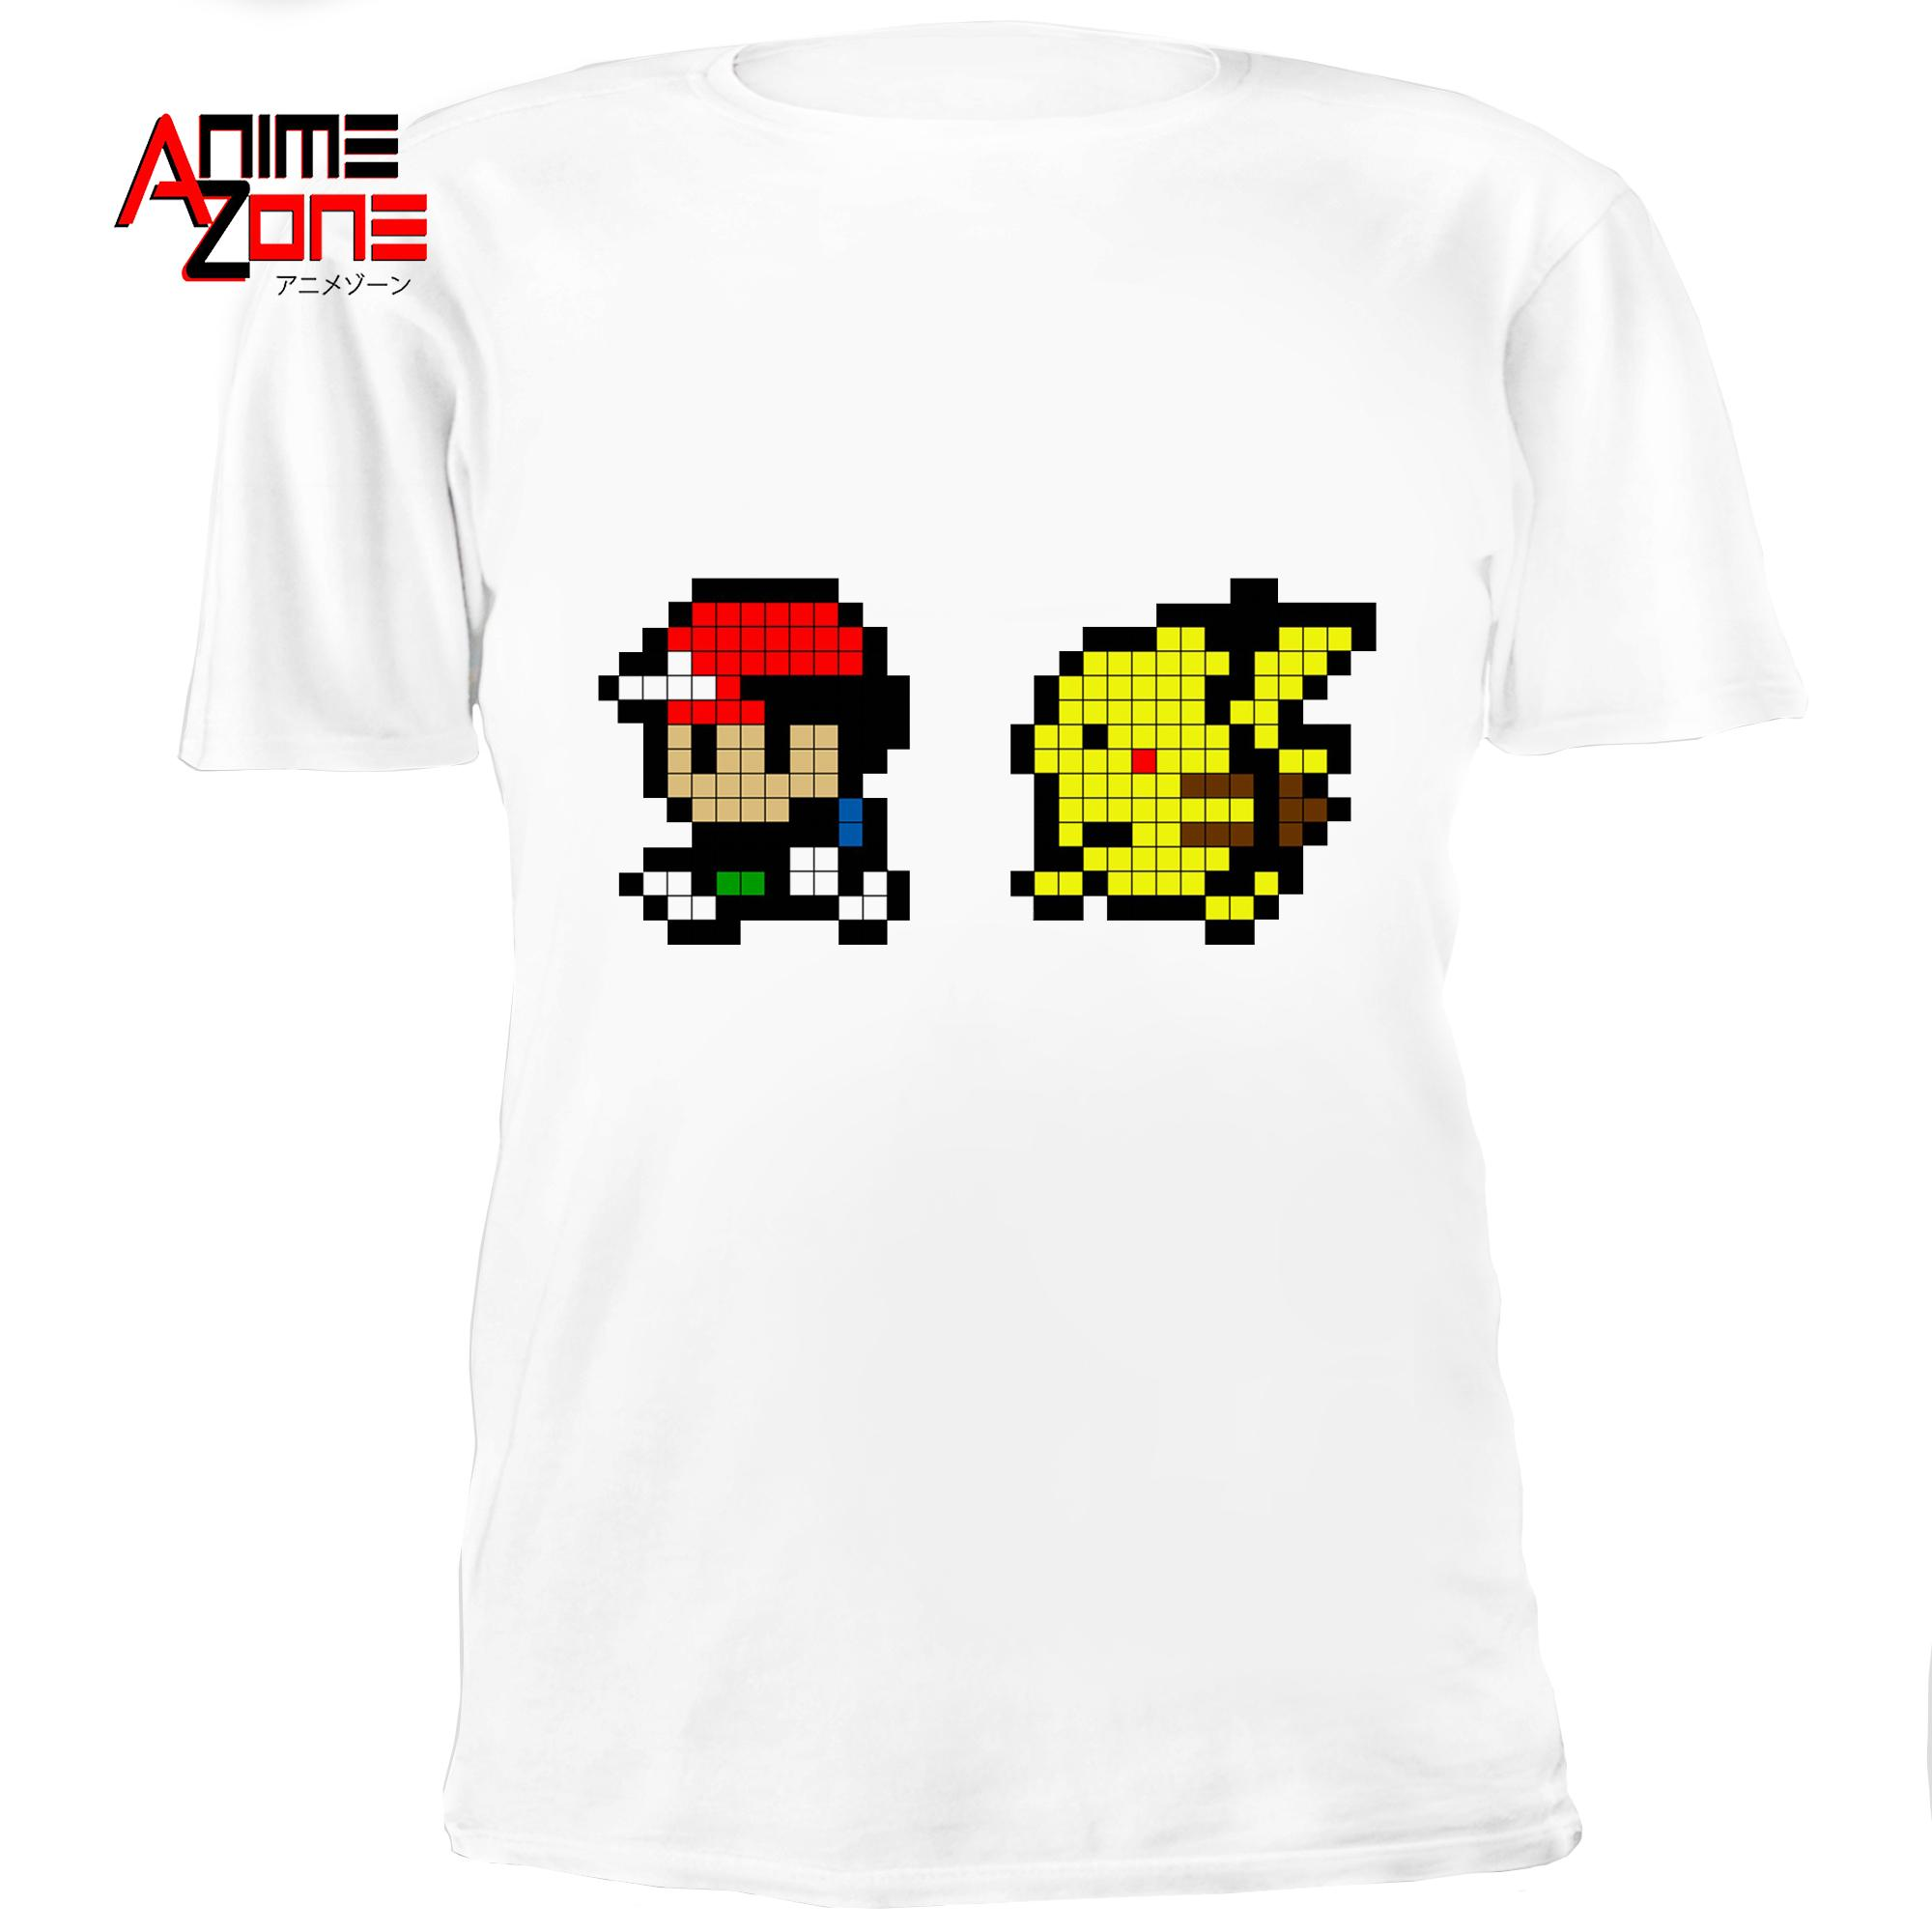 52aa674d Anime Zone POKEMON Edition Cotton Tops Printed Unisex T-Shirt (White)